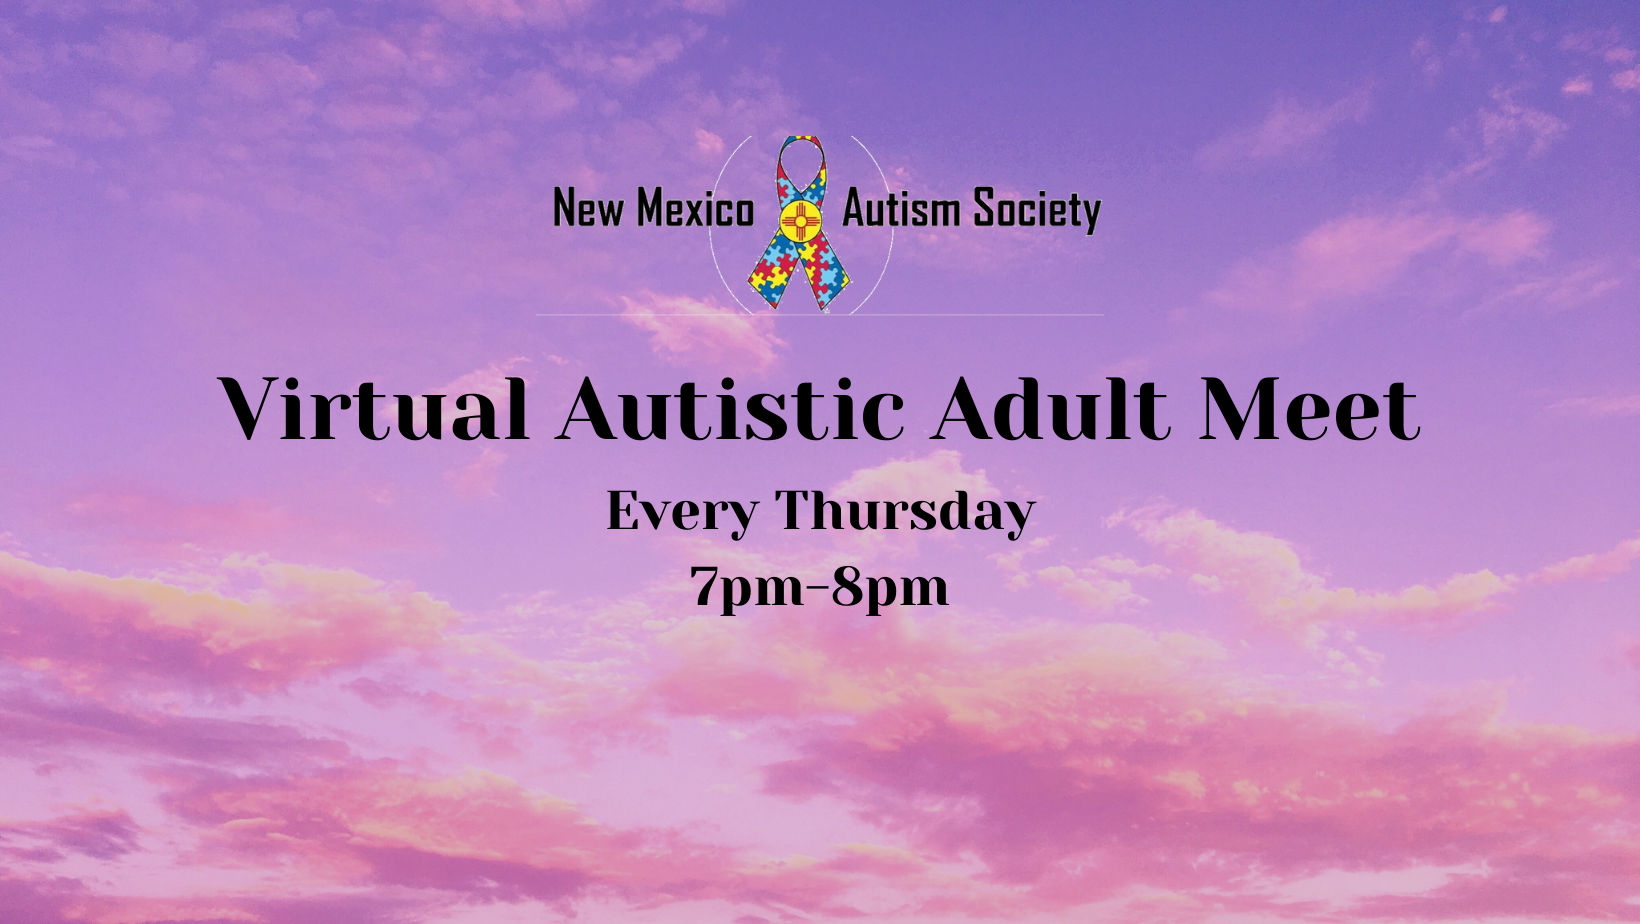 Virtual Autistic Adult Meet Image